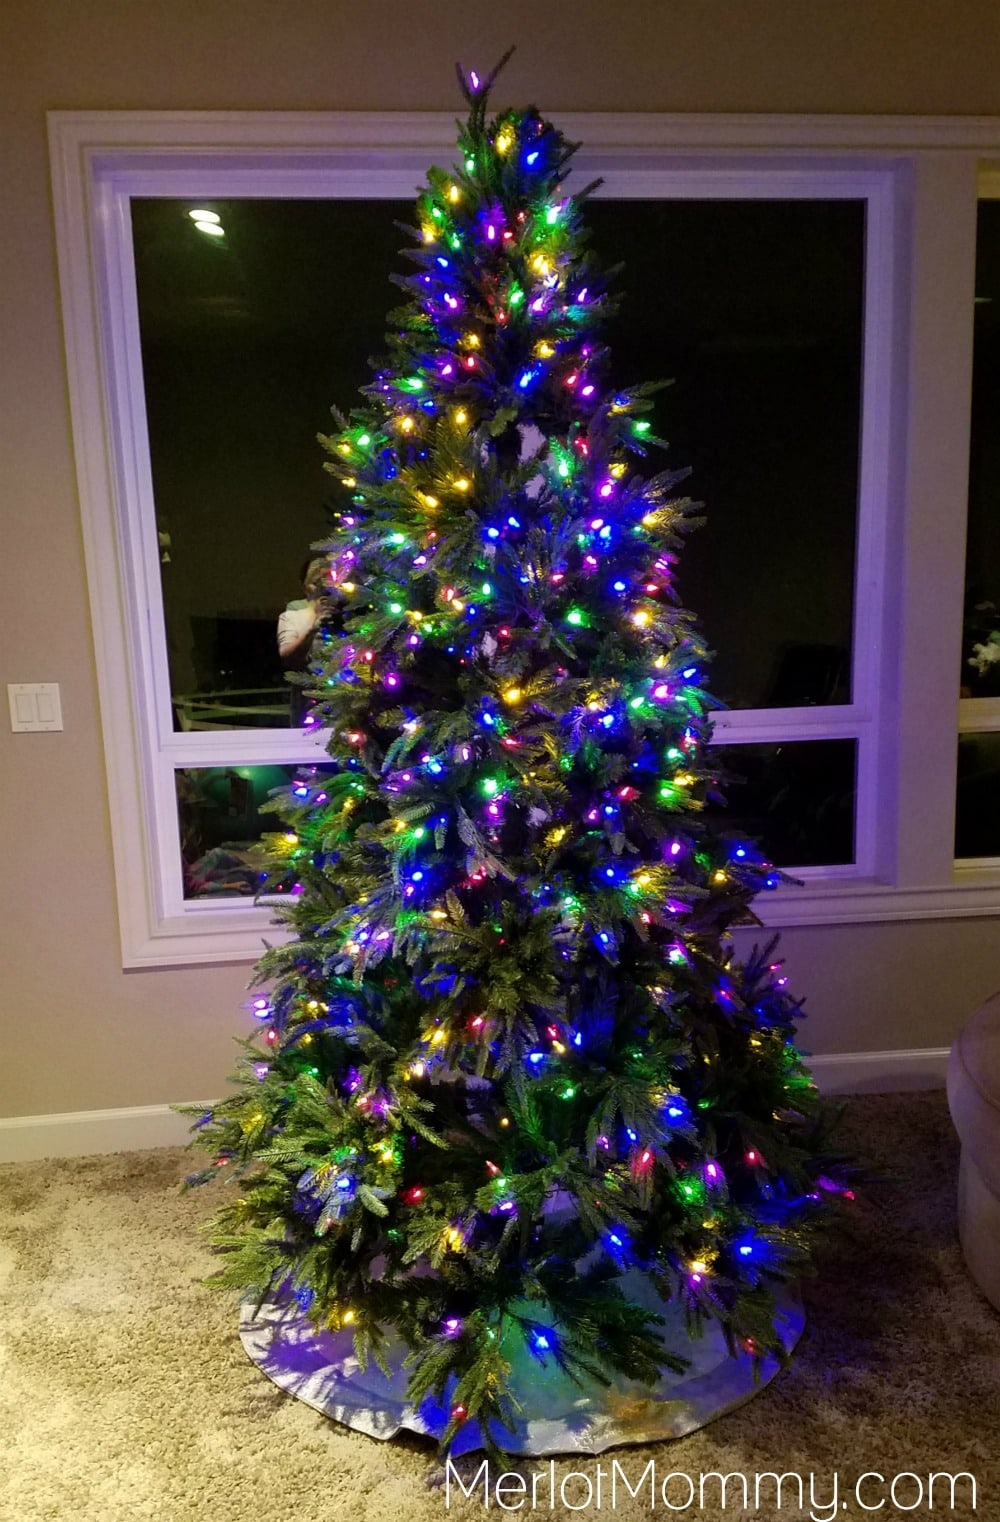 Make Decorating Your Tree for the Holidays Easy with ULTIMA Tree - Muli-Colored LEDs